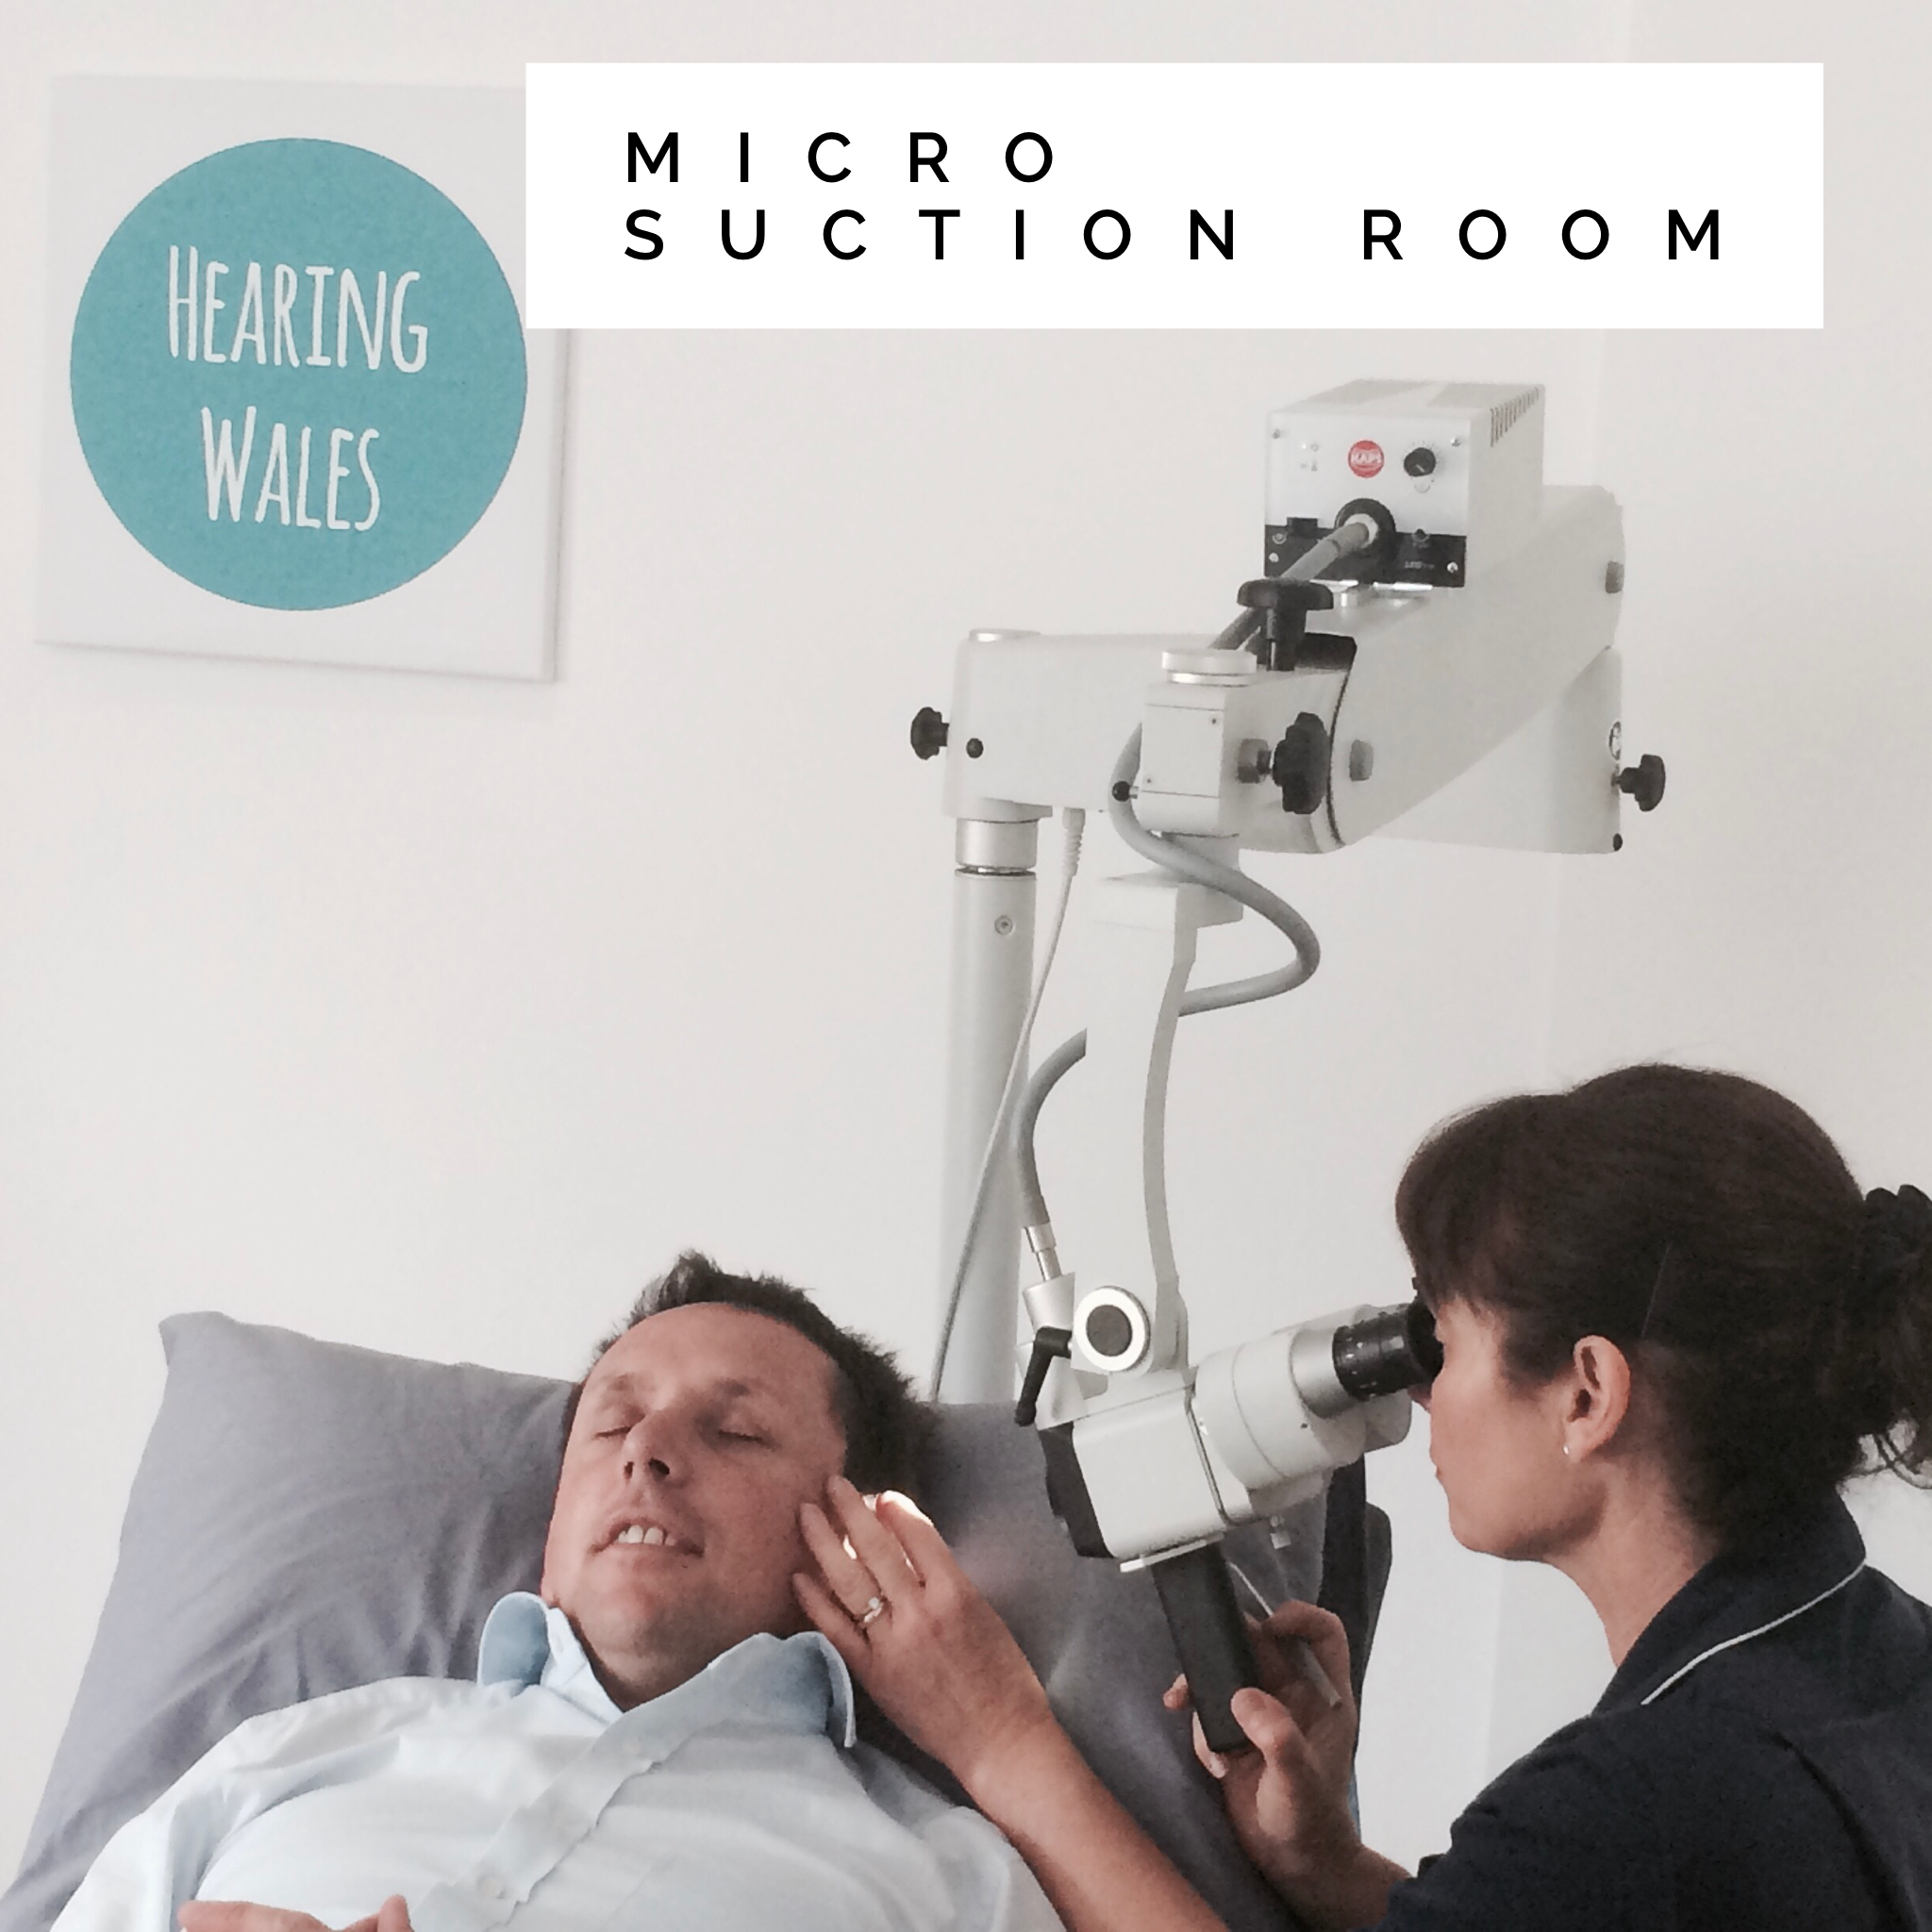 Hearing Wales Swansea Hearing Centre Ear Wax Removal Uplands Micro Suction Room